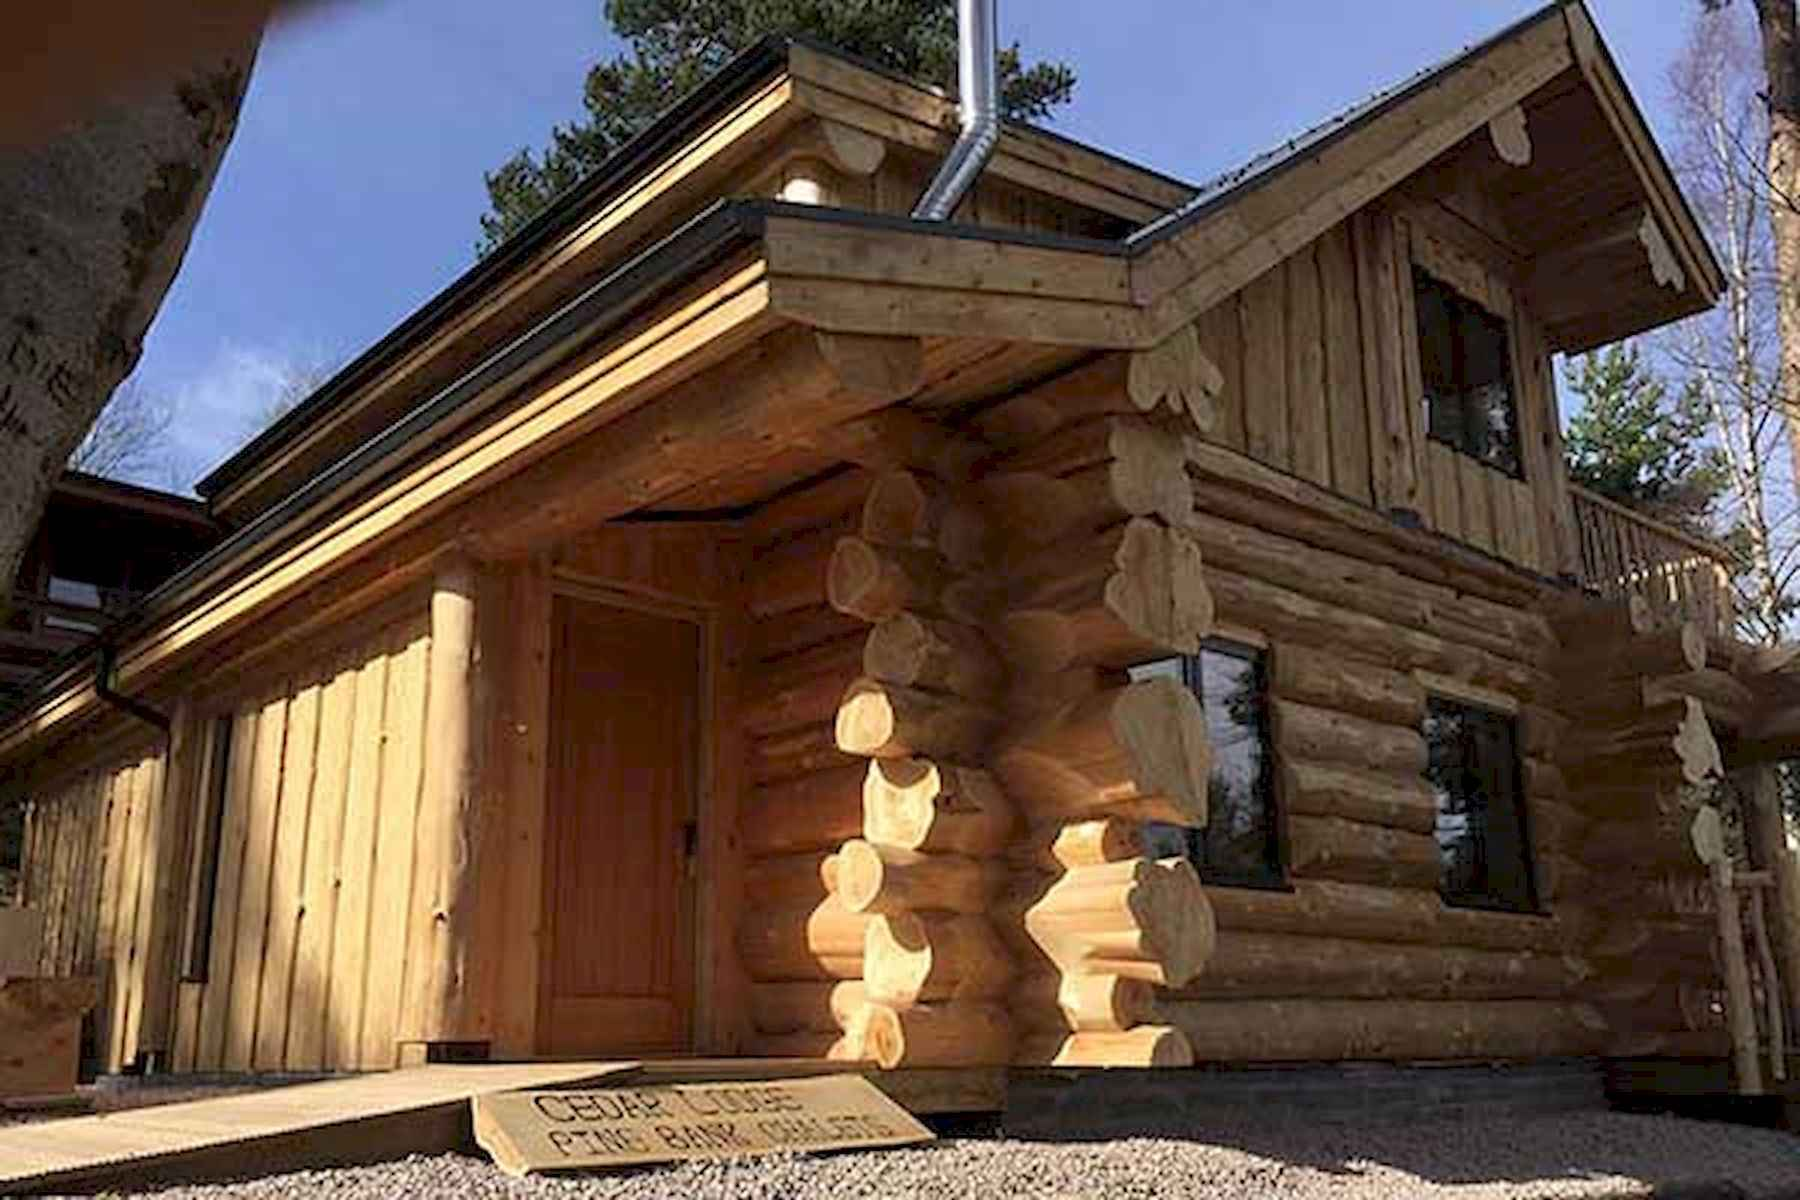 60 Rustic Log Cabin Homes Plans Design Ideas And Remodel (44)